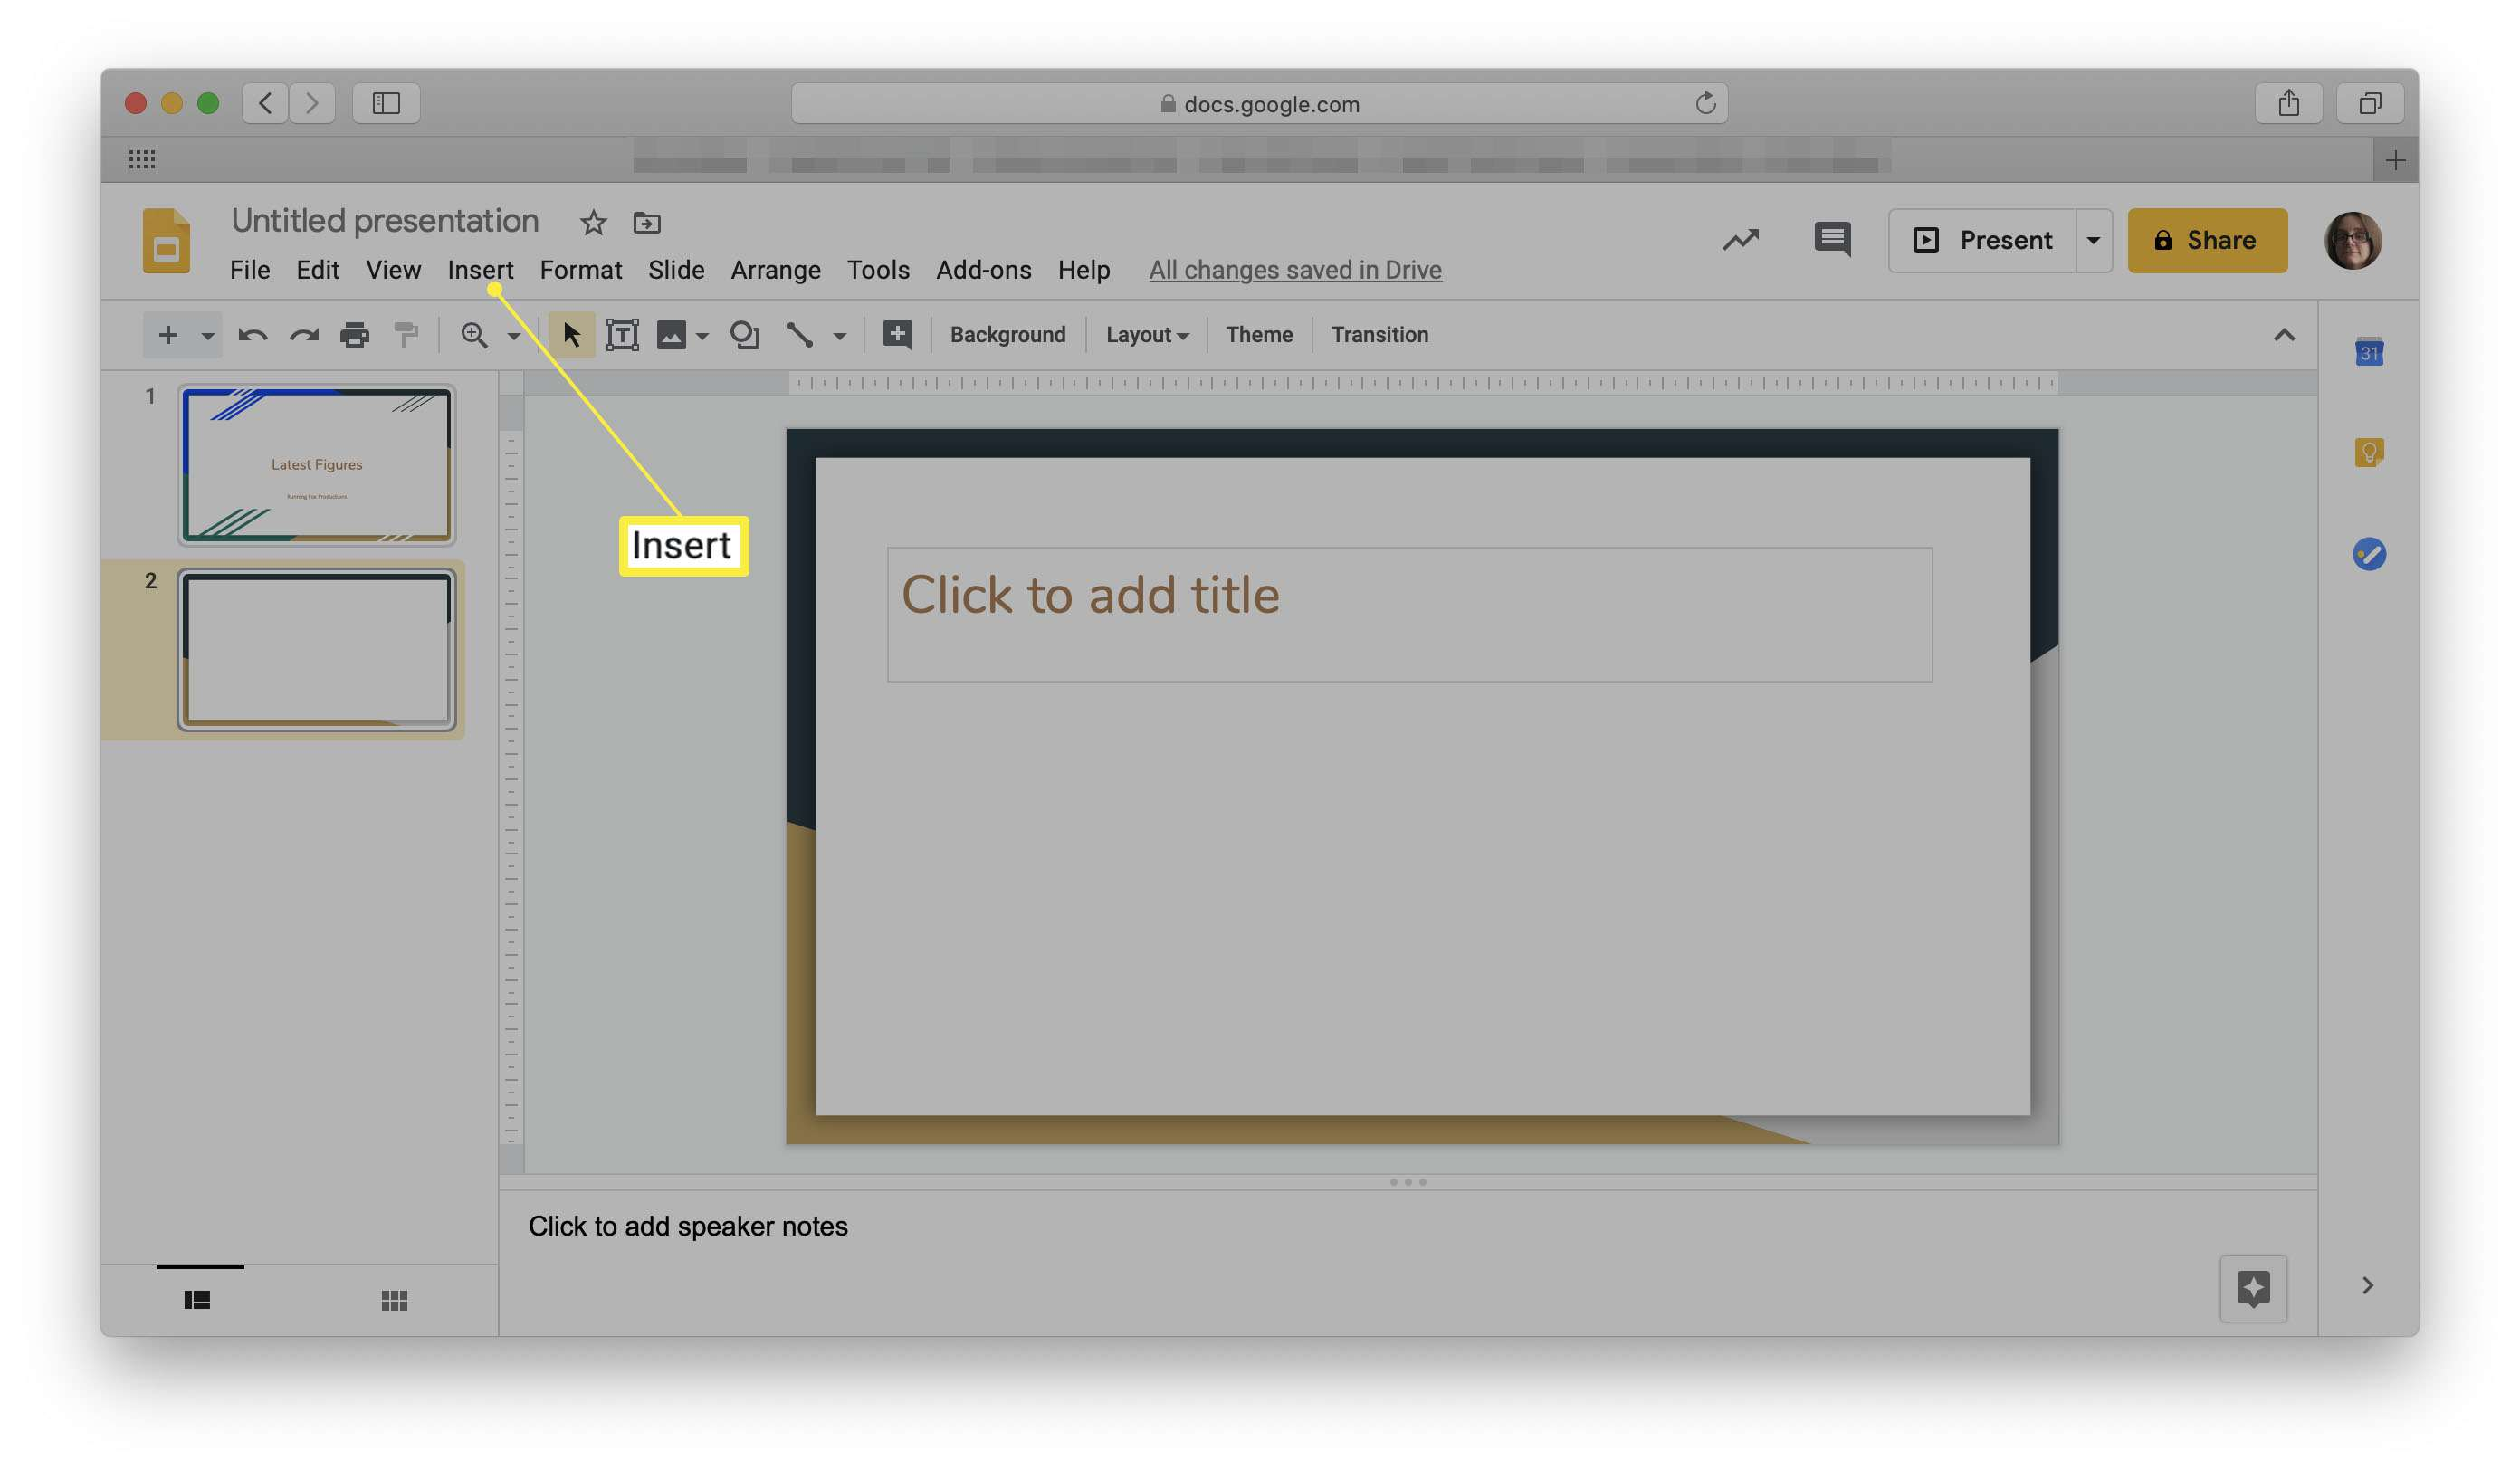 Google Slides with Insert highlighted